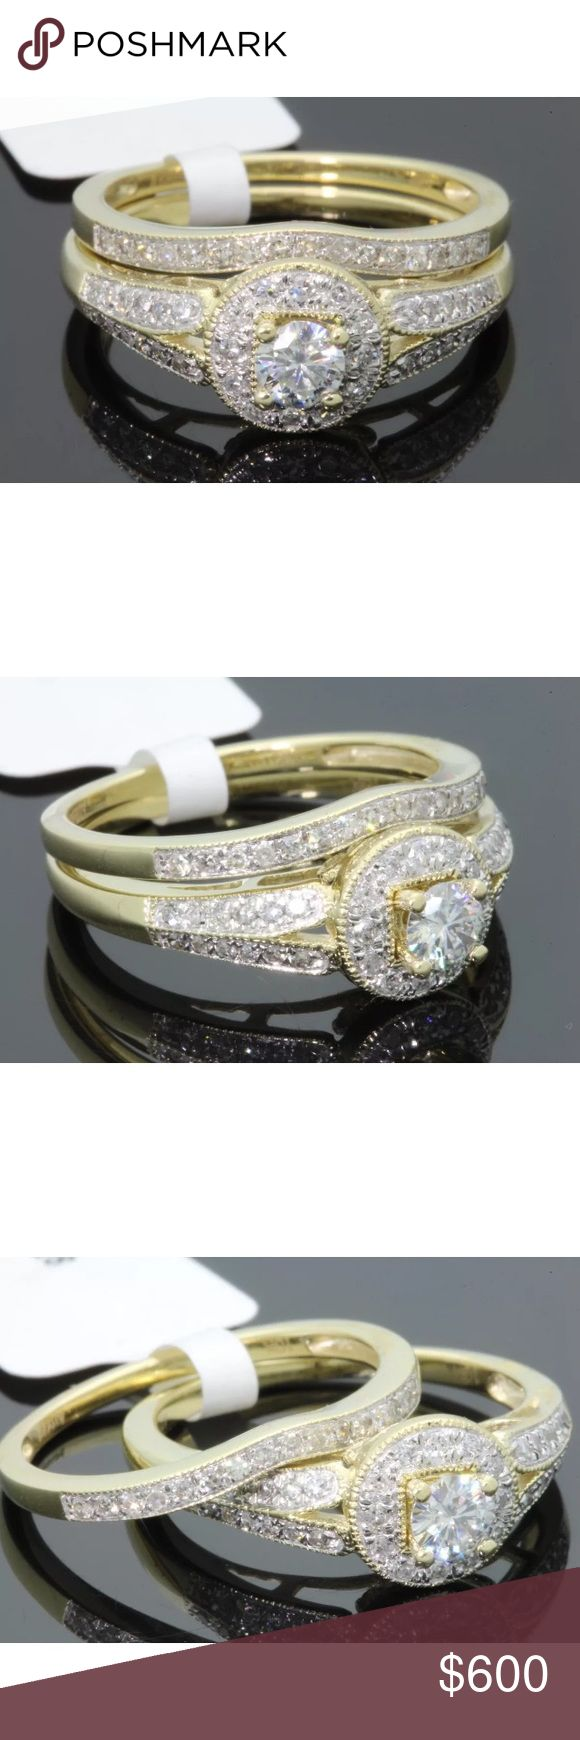 0.55 carat 10k yellow gold diamond ring set 0.55 carat 10k yellow gold diamond ring set! High quality diamonds! H-I color/SI1 clarity. Center diamond is 0.20 carats! Retail $1675! Lower on pal! Jewelry Rings